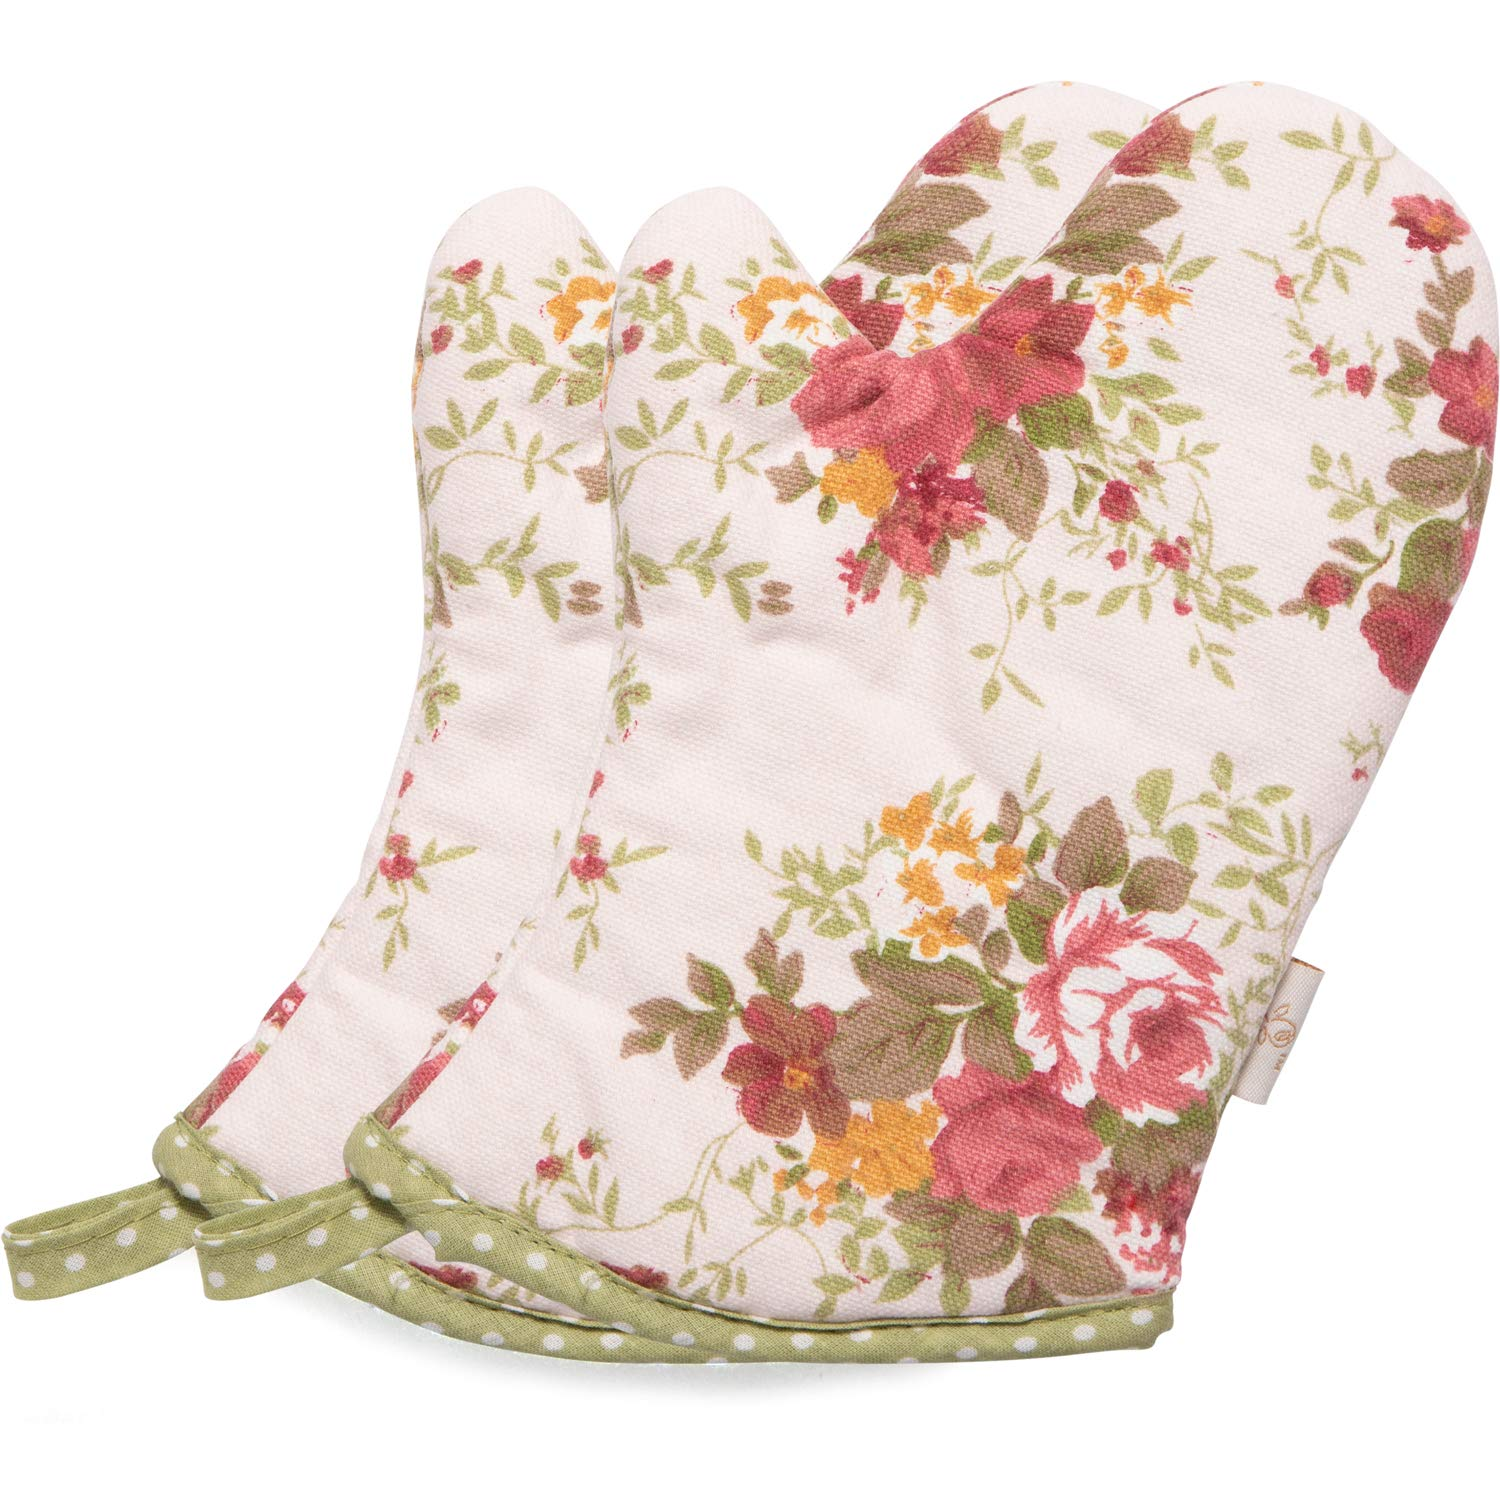 NEOVIVA Cute Oven Mitts for Kids in Play Kitchen, Little Chef Oven Mitts for Funny Easy Bake Oven, Floral Quartz Pink